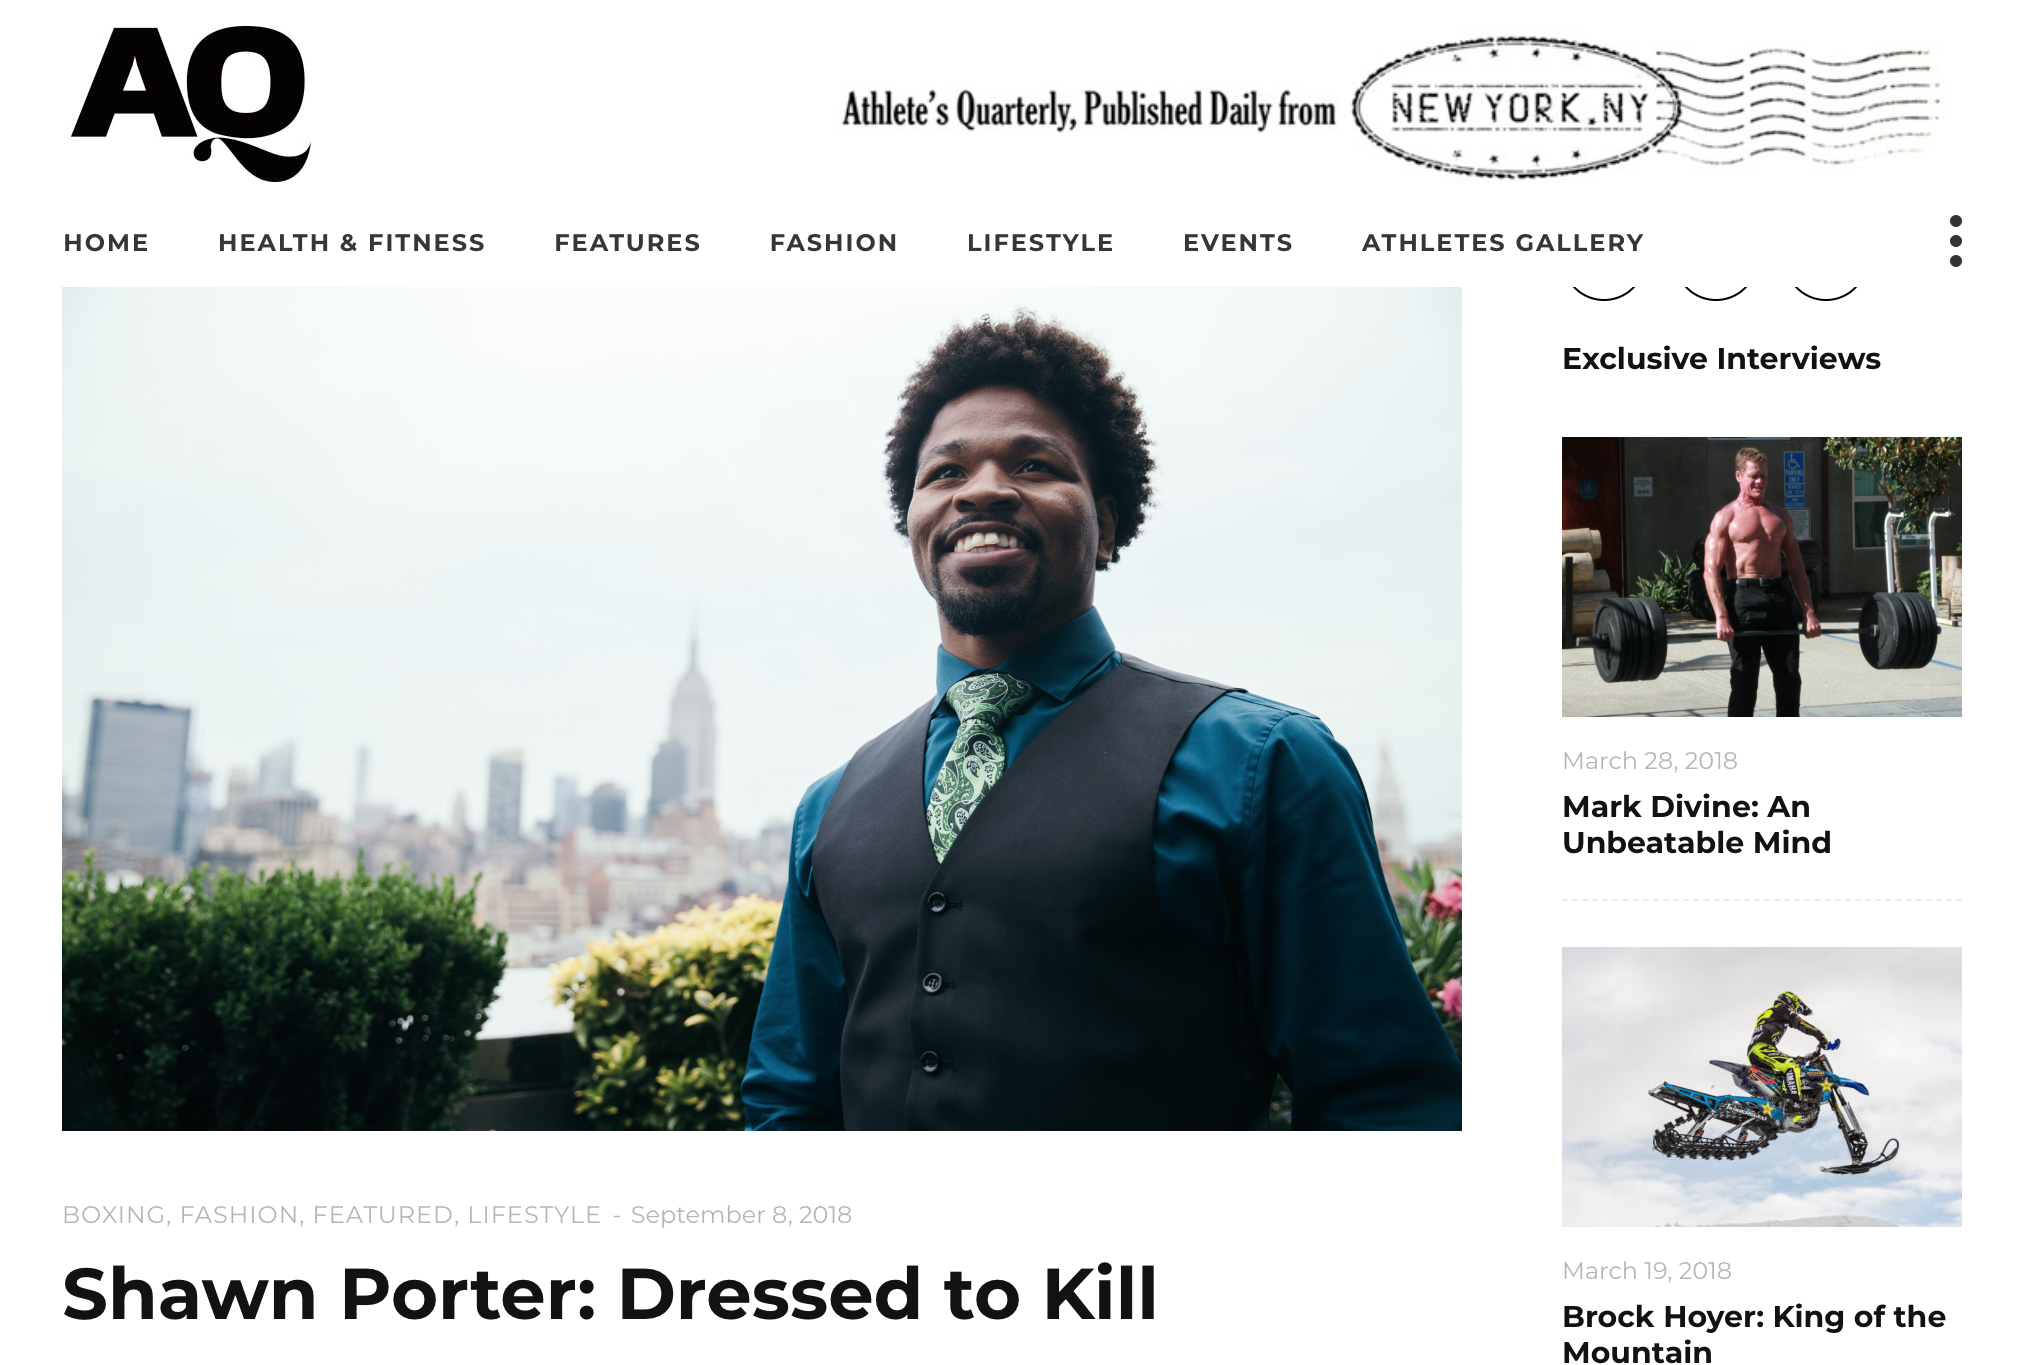 Athlete's Quarterly Goes In-depth with shawn porter on style, fighting & more